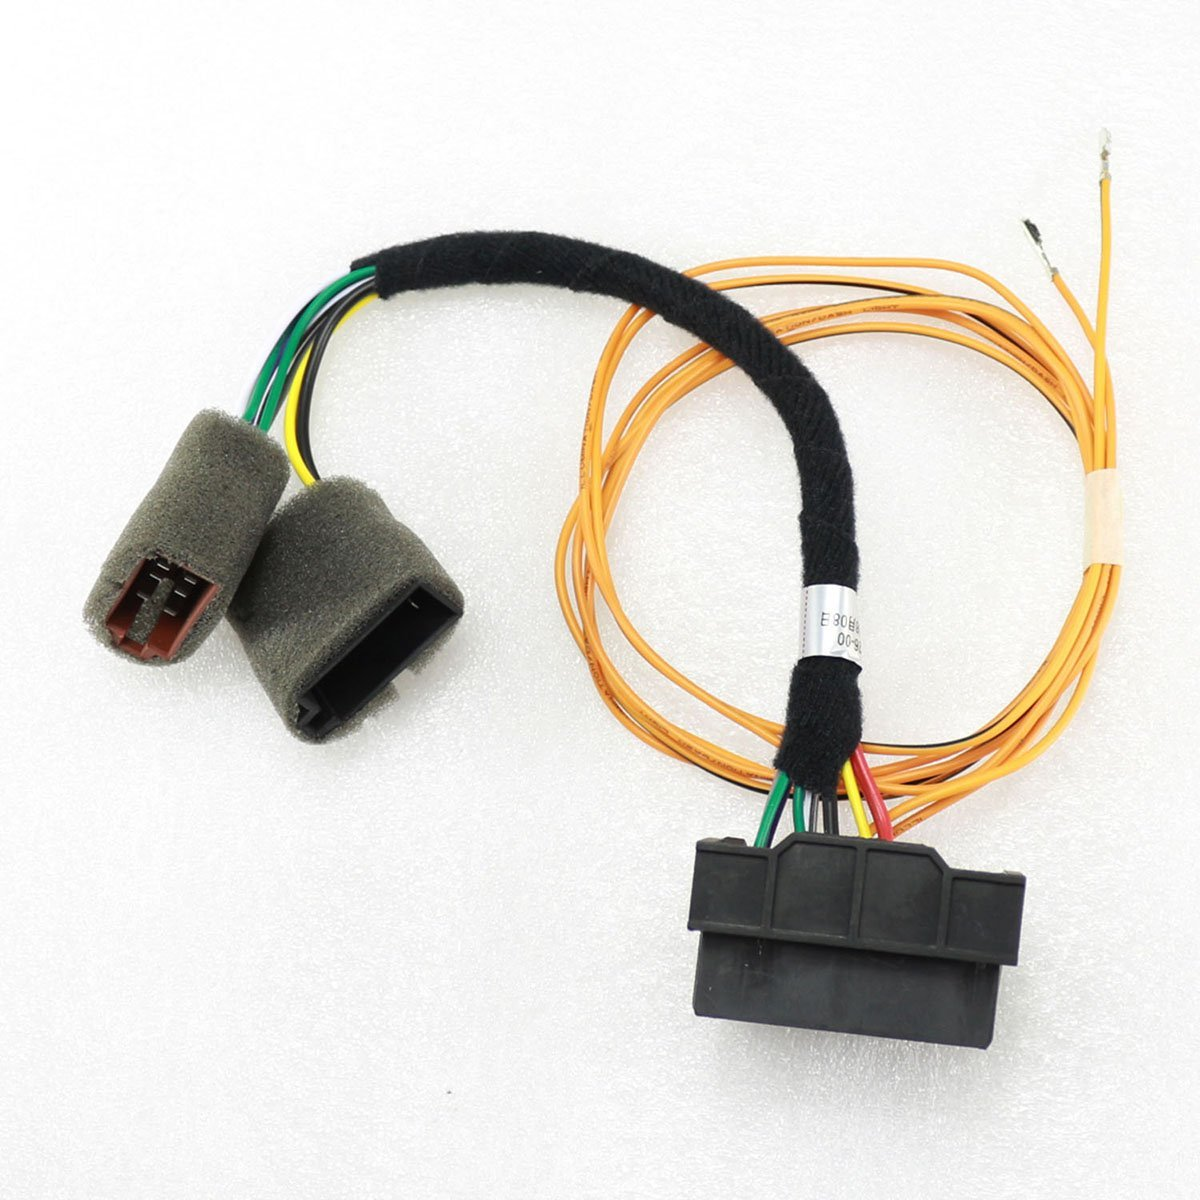 Buy Oem Vw Rcd510 Rcd310 Wiring Harness Adapter Radio Iso To Plug Generic Stereo Connector Wire Play Cable For Rns510